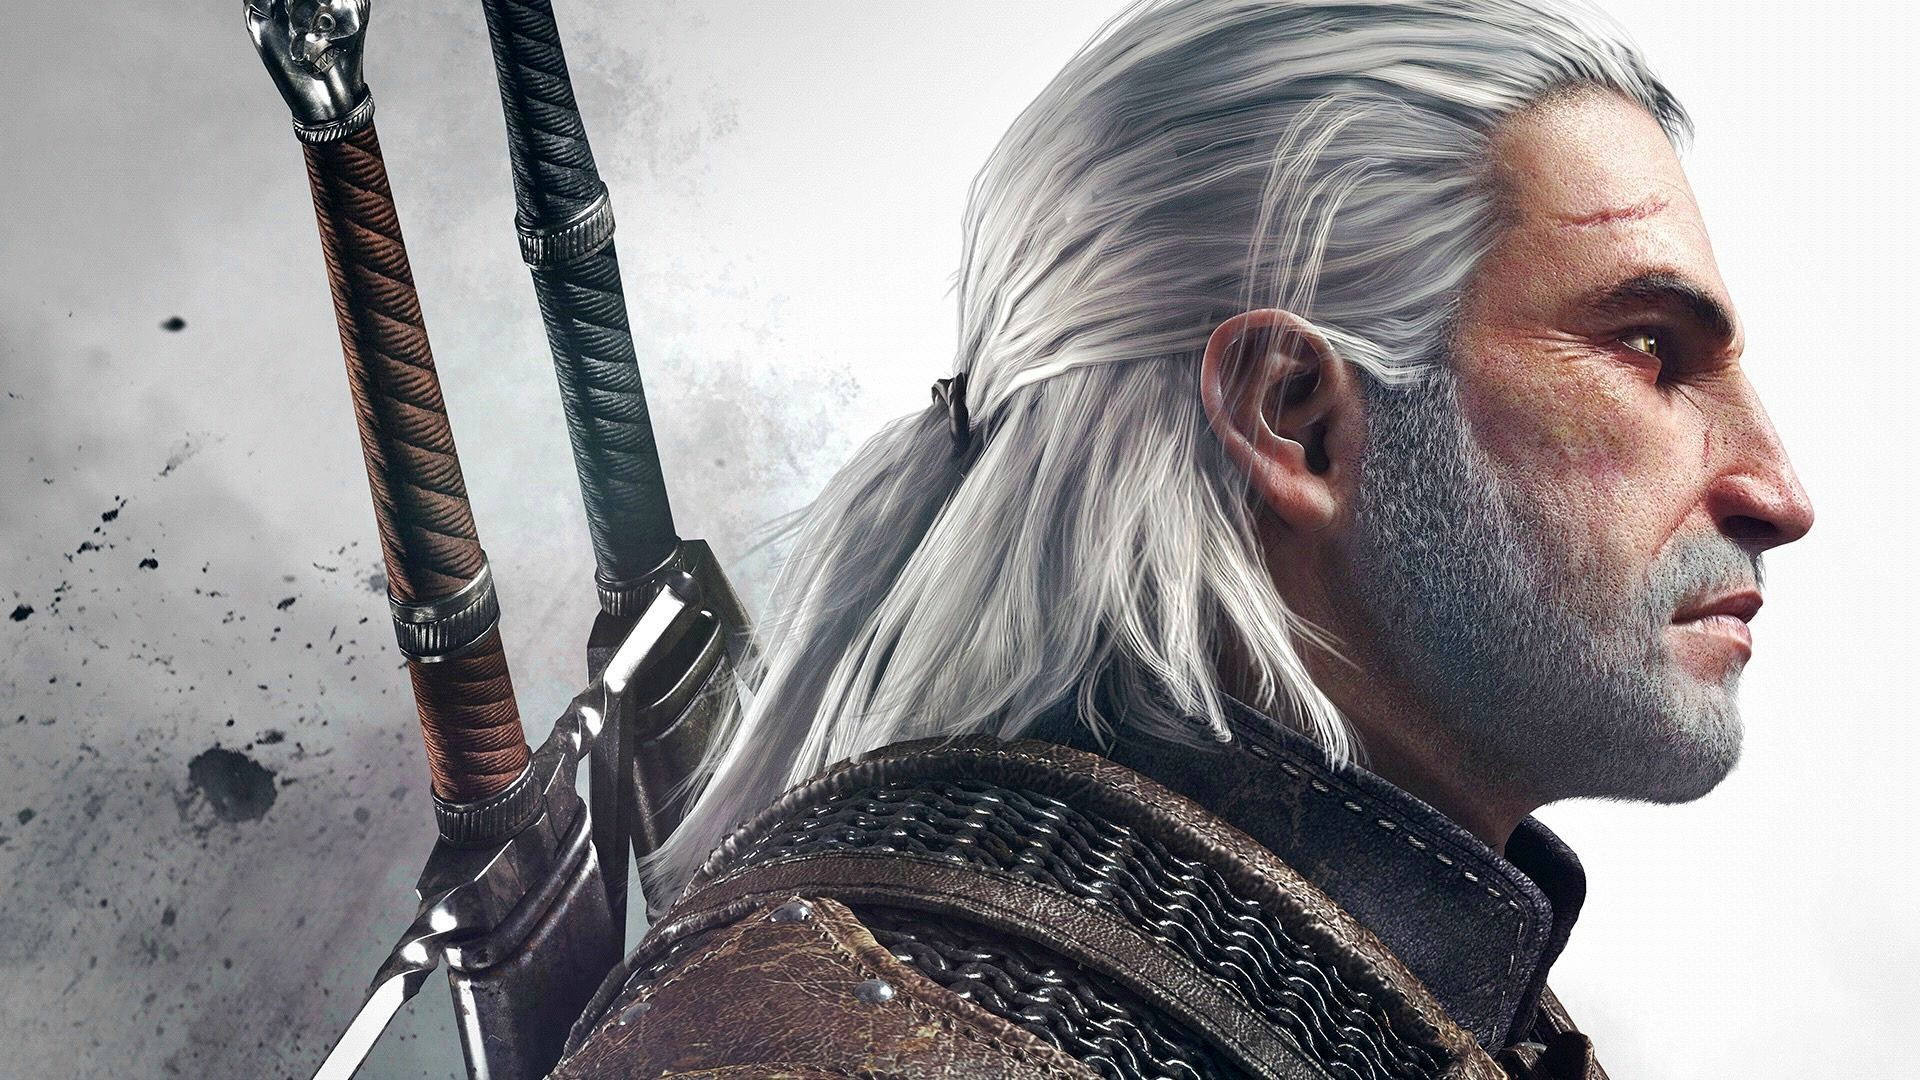 Video Game – The Witcher 3: Wild Hunt Geralt of Rivia Wallpaper